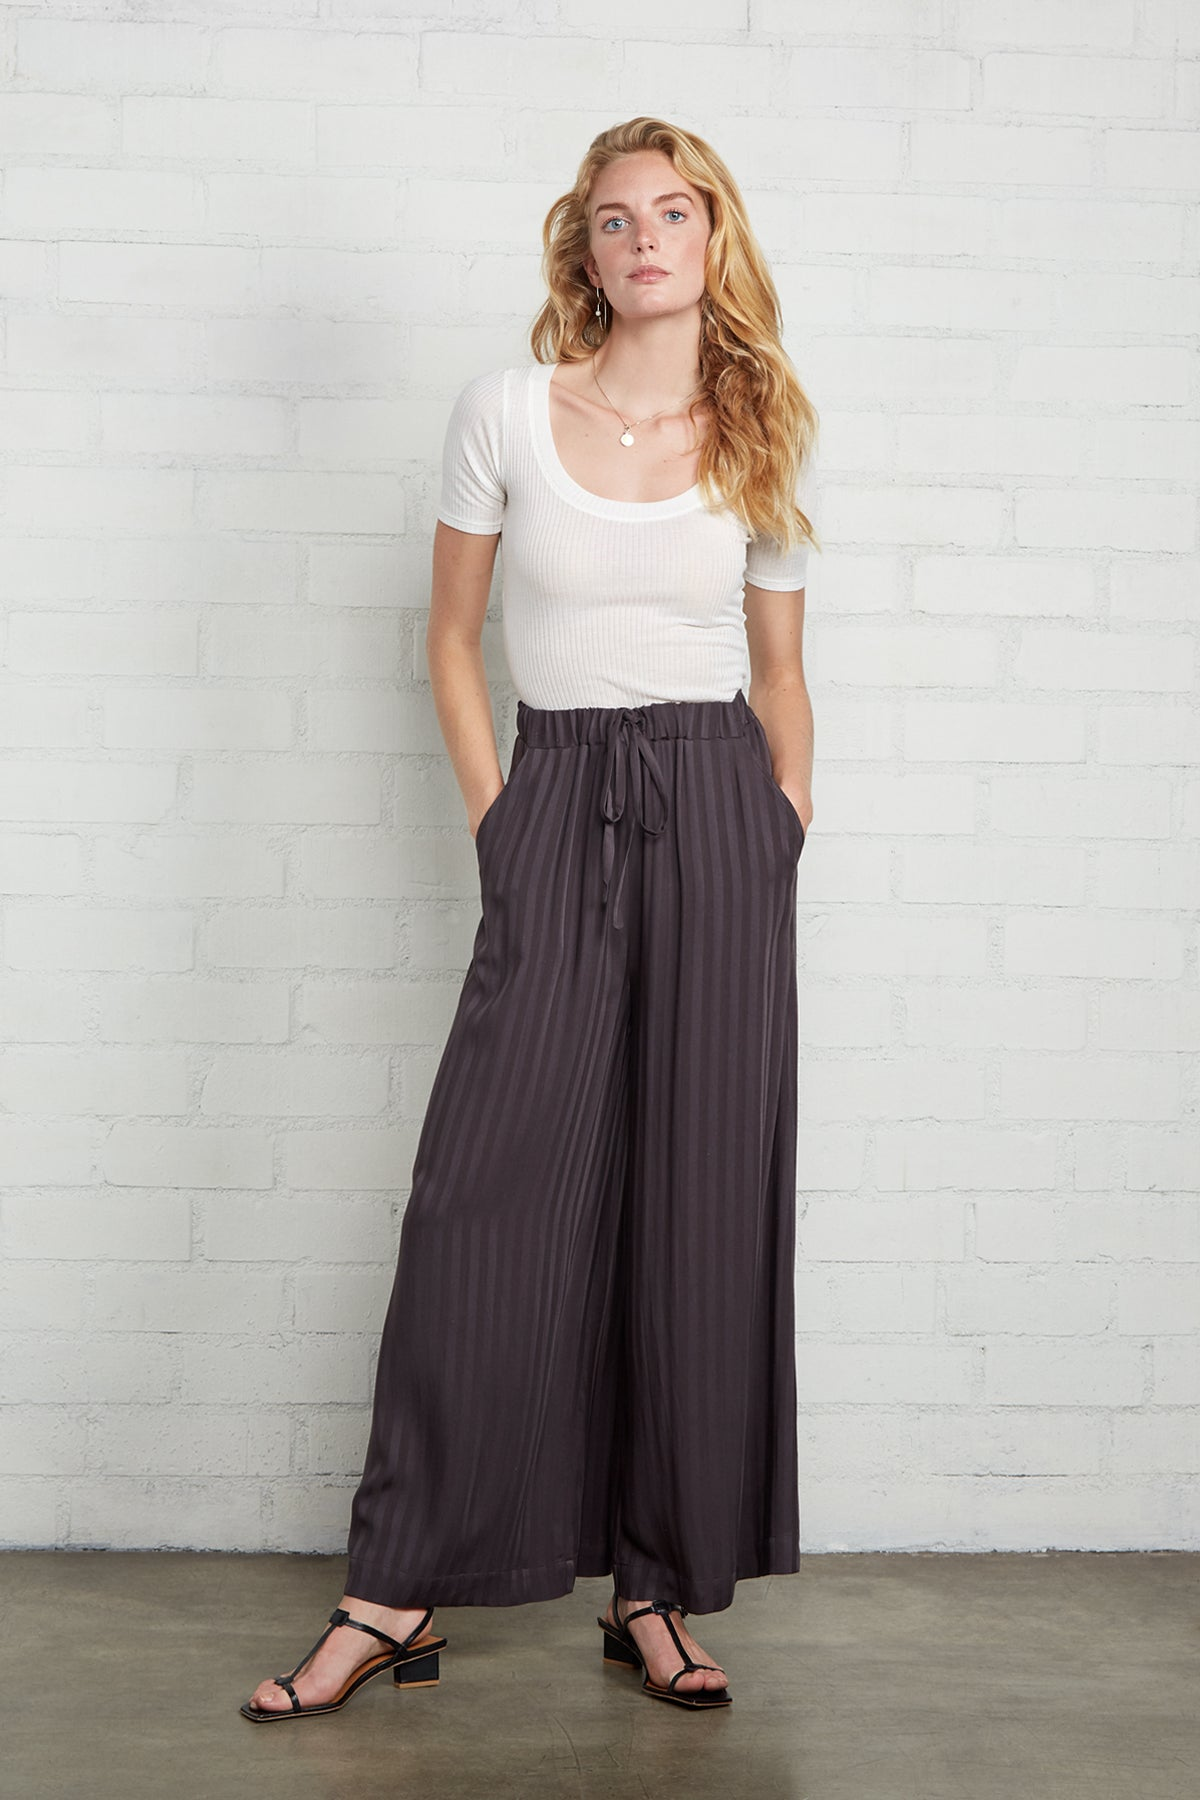 Shadow Stripe Lyric Pant - Faded Black